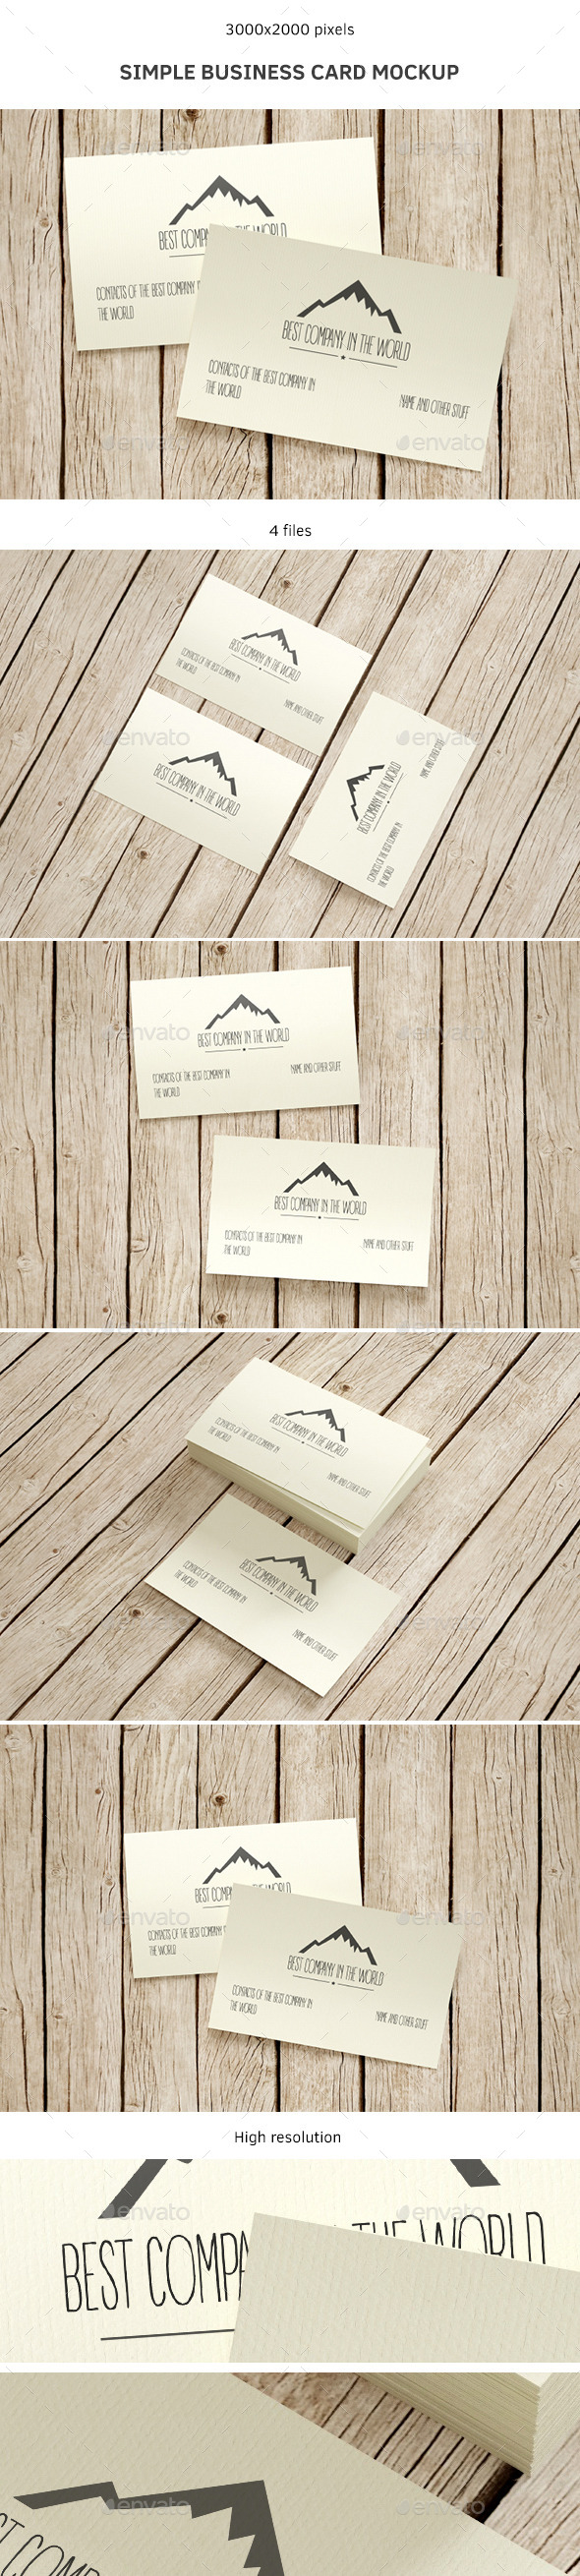 GraphicRiver Simple Business Card Mockup 9118657